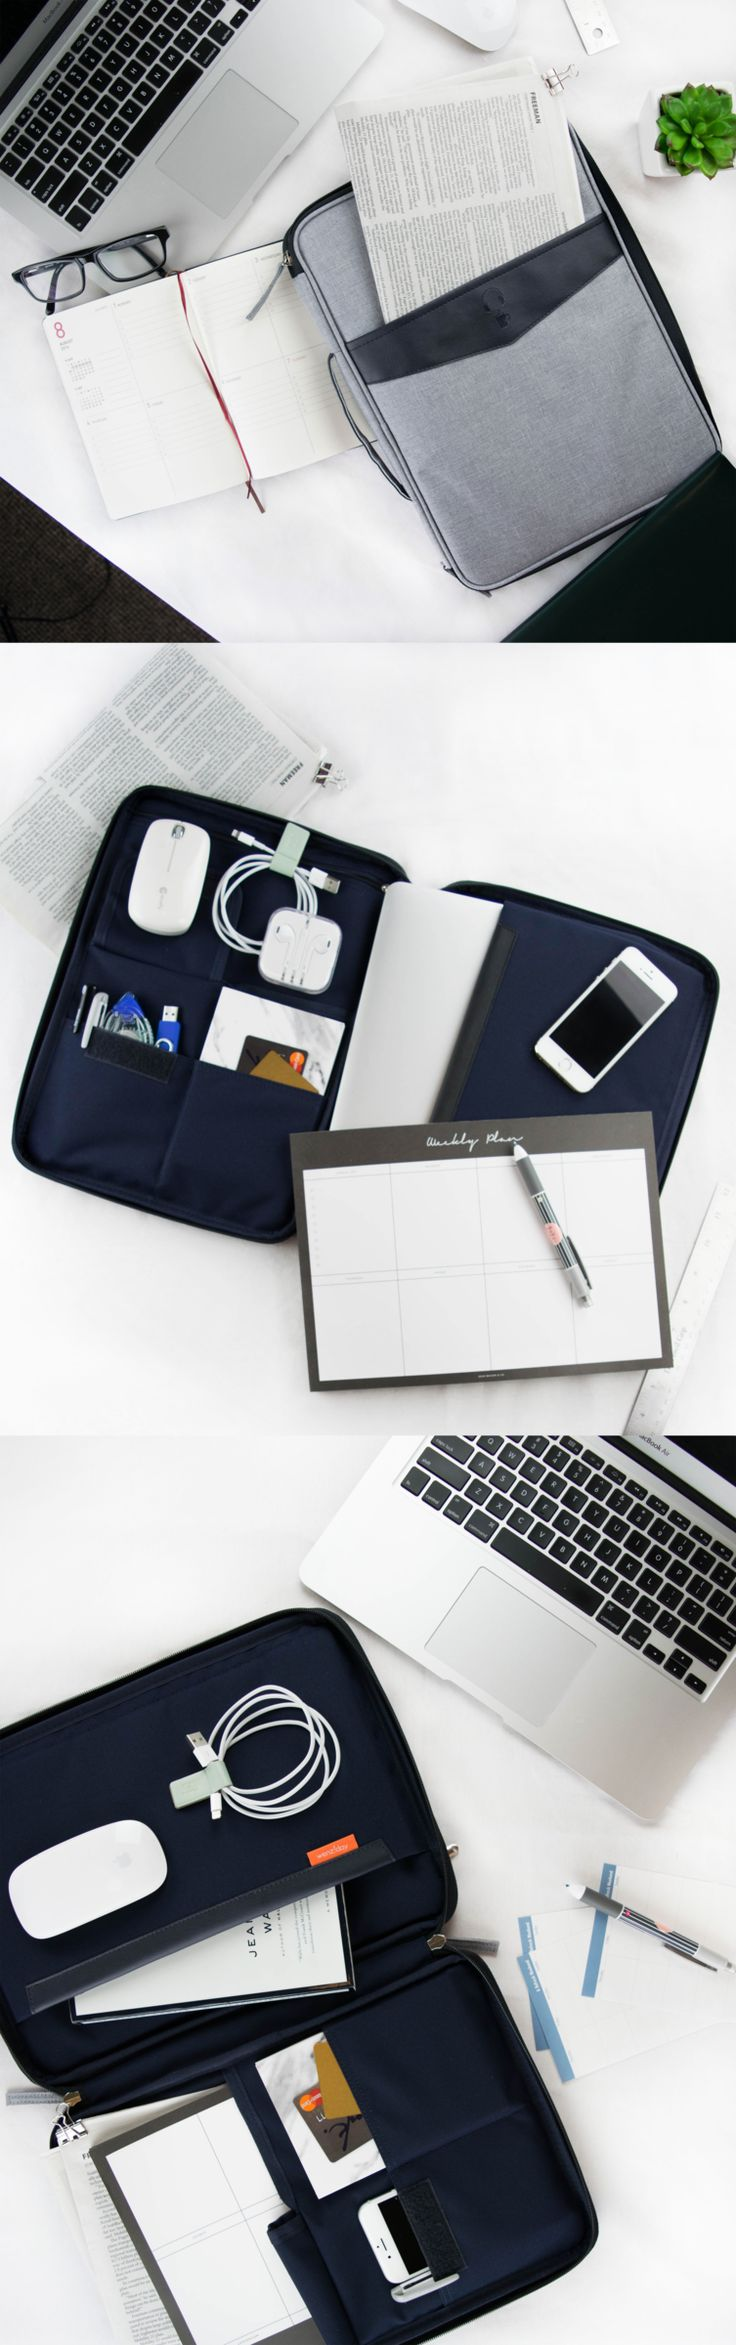 """Looking to get your office organized? Look no further! We have the 1 item that will do it for you! Just tuck your laptop & accessories into the 7 pockets in this sophisticated laptop pouch! It has a dedicated pocket for 13"""" laptops as well as a pocket for your tablet or iPad. It's also ultra padded for extra protection! Keep your important documents in the front pocket or main compartment & zip it all up for security. Transform your office with this chic pouch for a polished & professional…"""